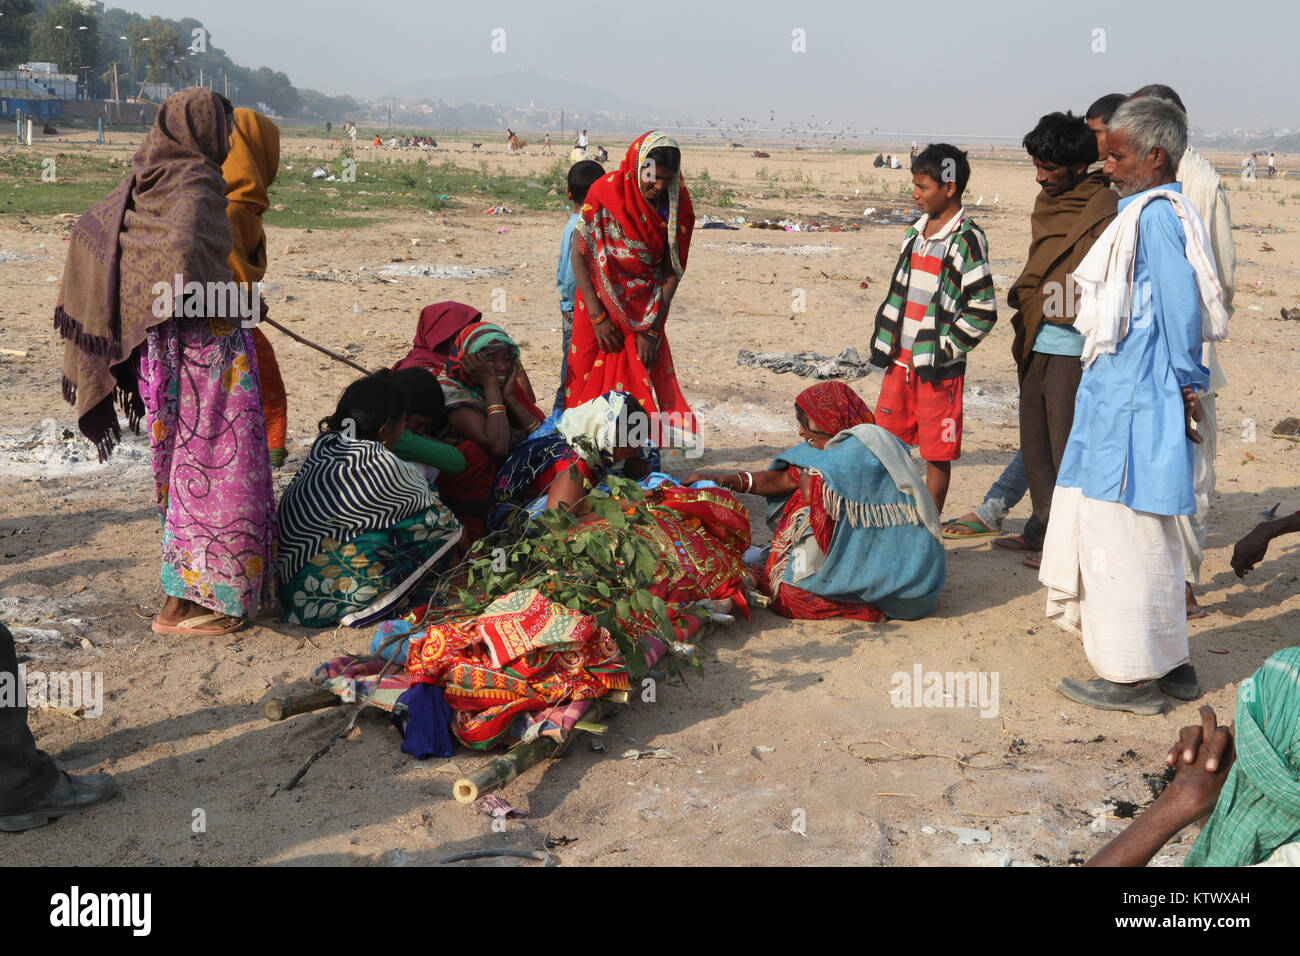 The relatives of a deceased man grieve over his body before it is cremated in Gaya, Bihar, India - Stock Image